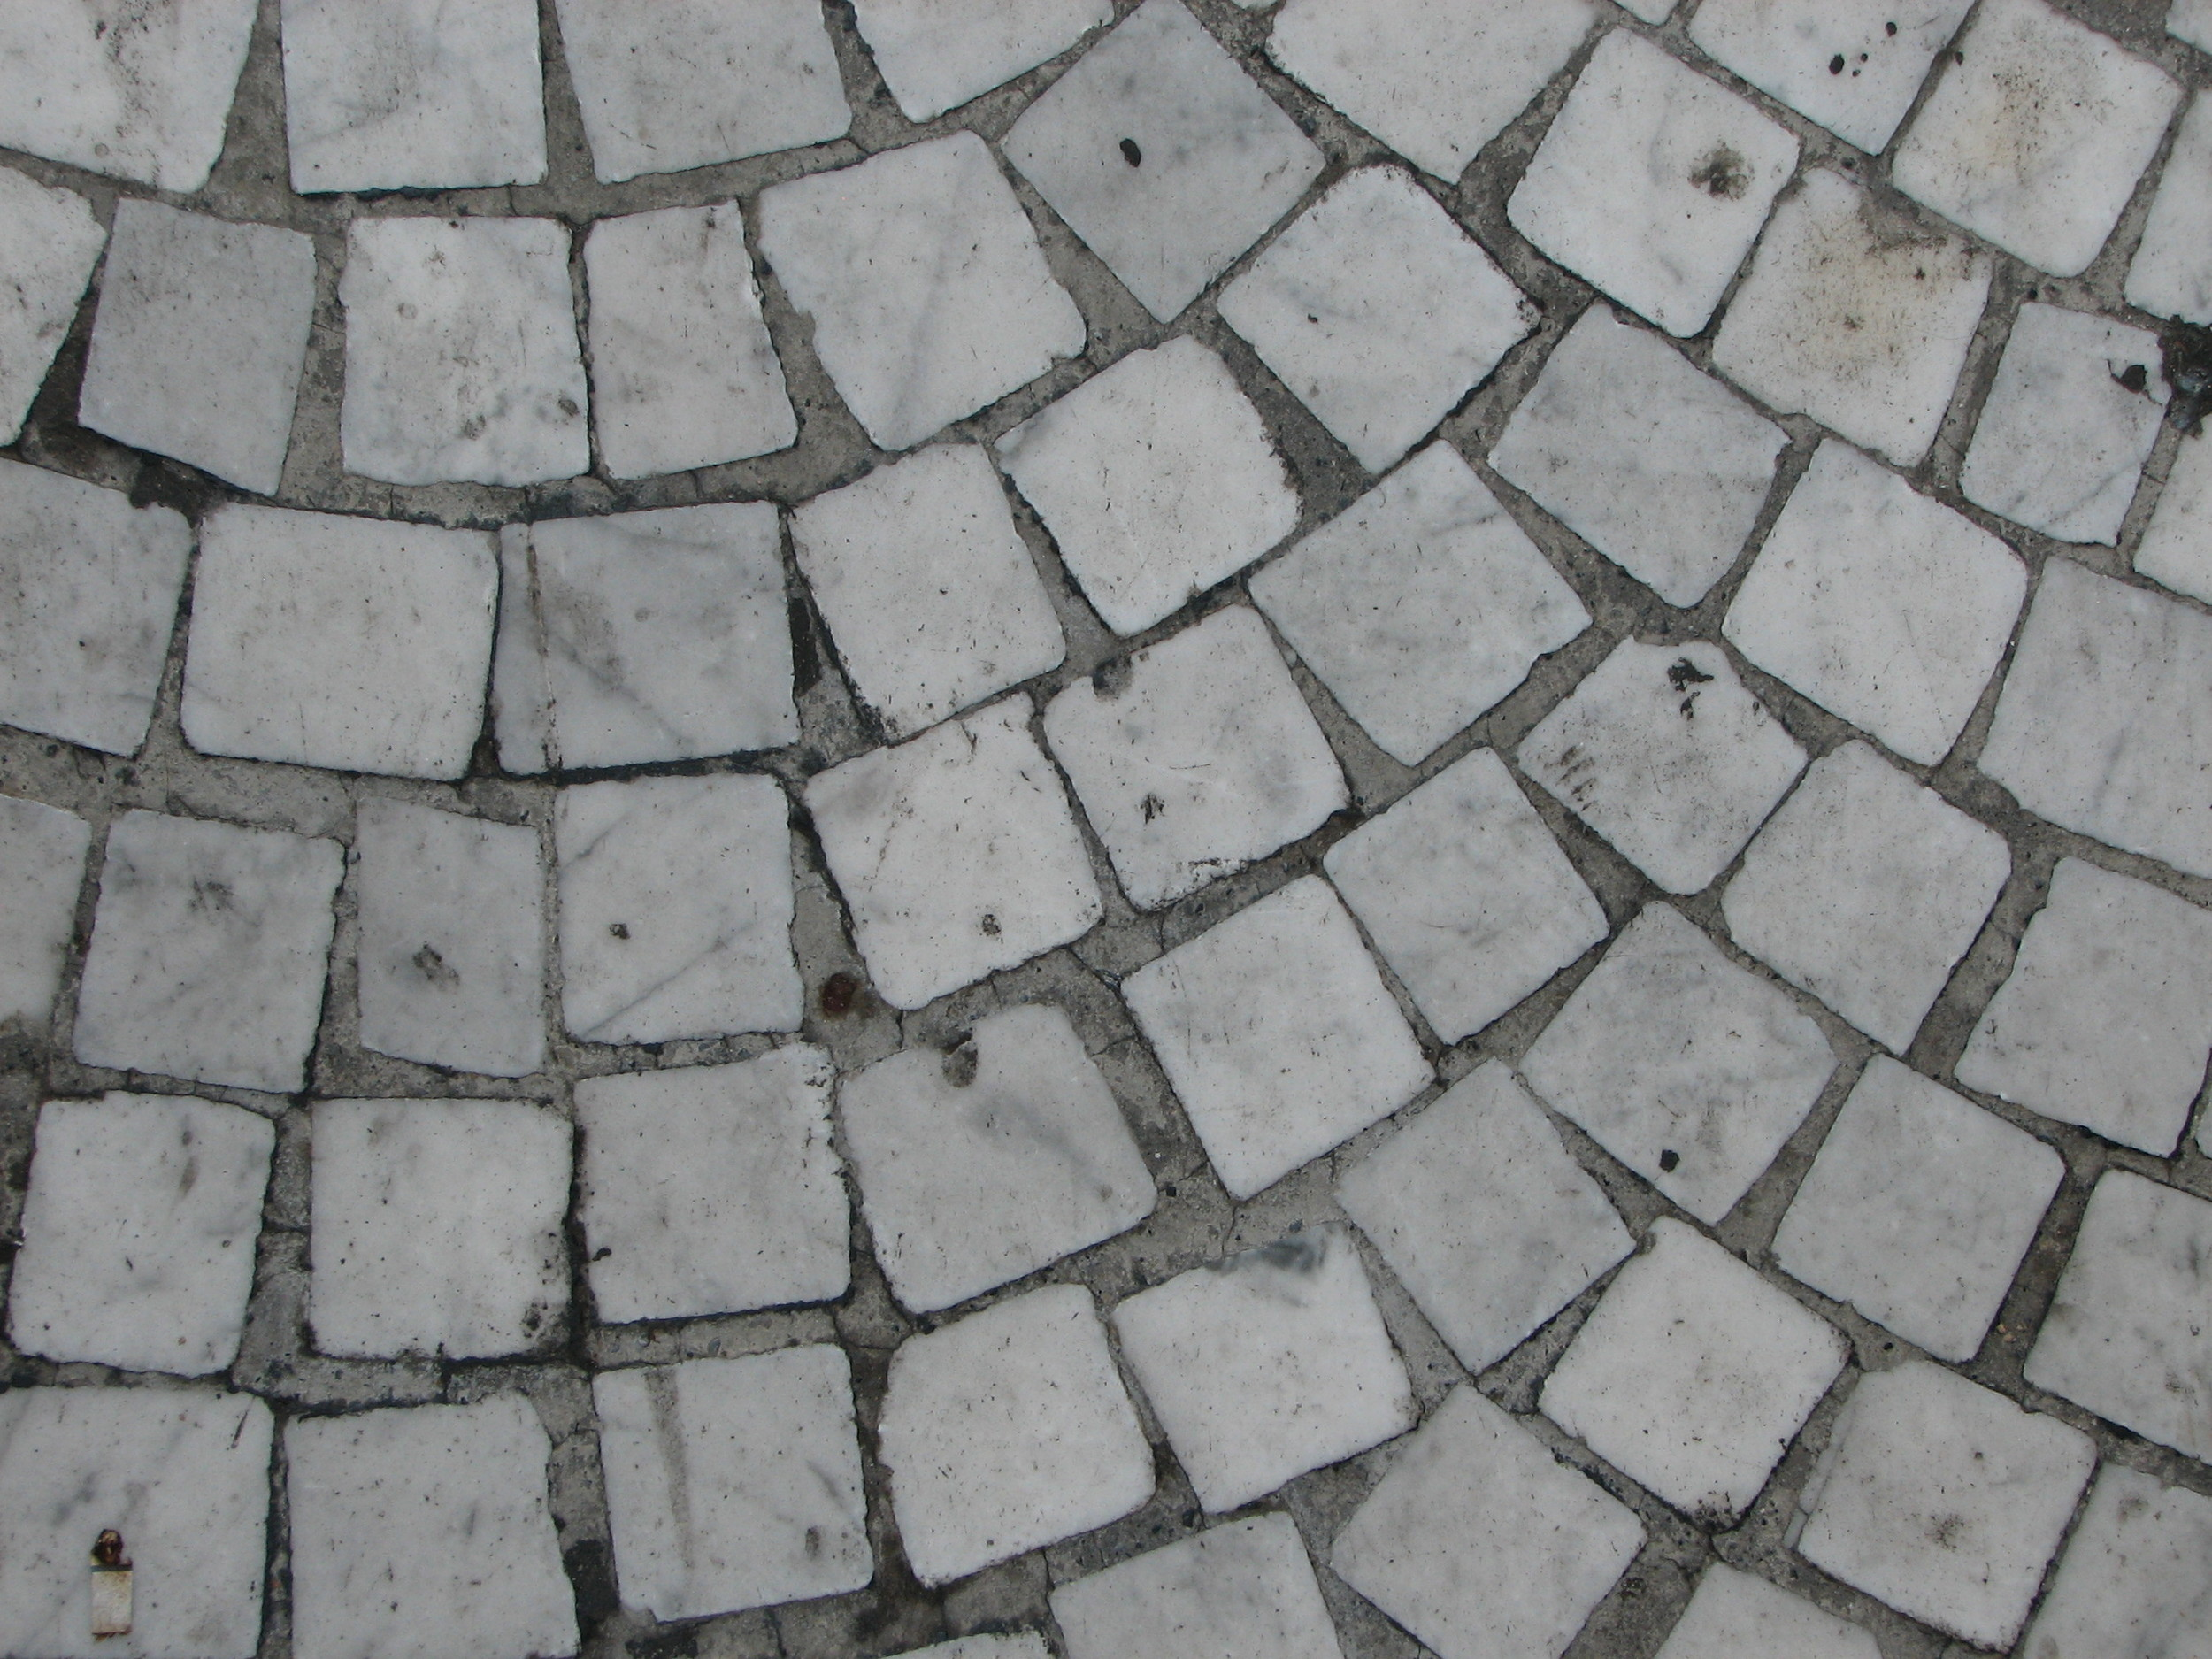 Marble tile floor or road, Italy